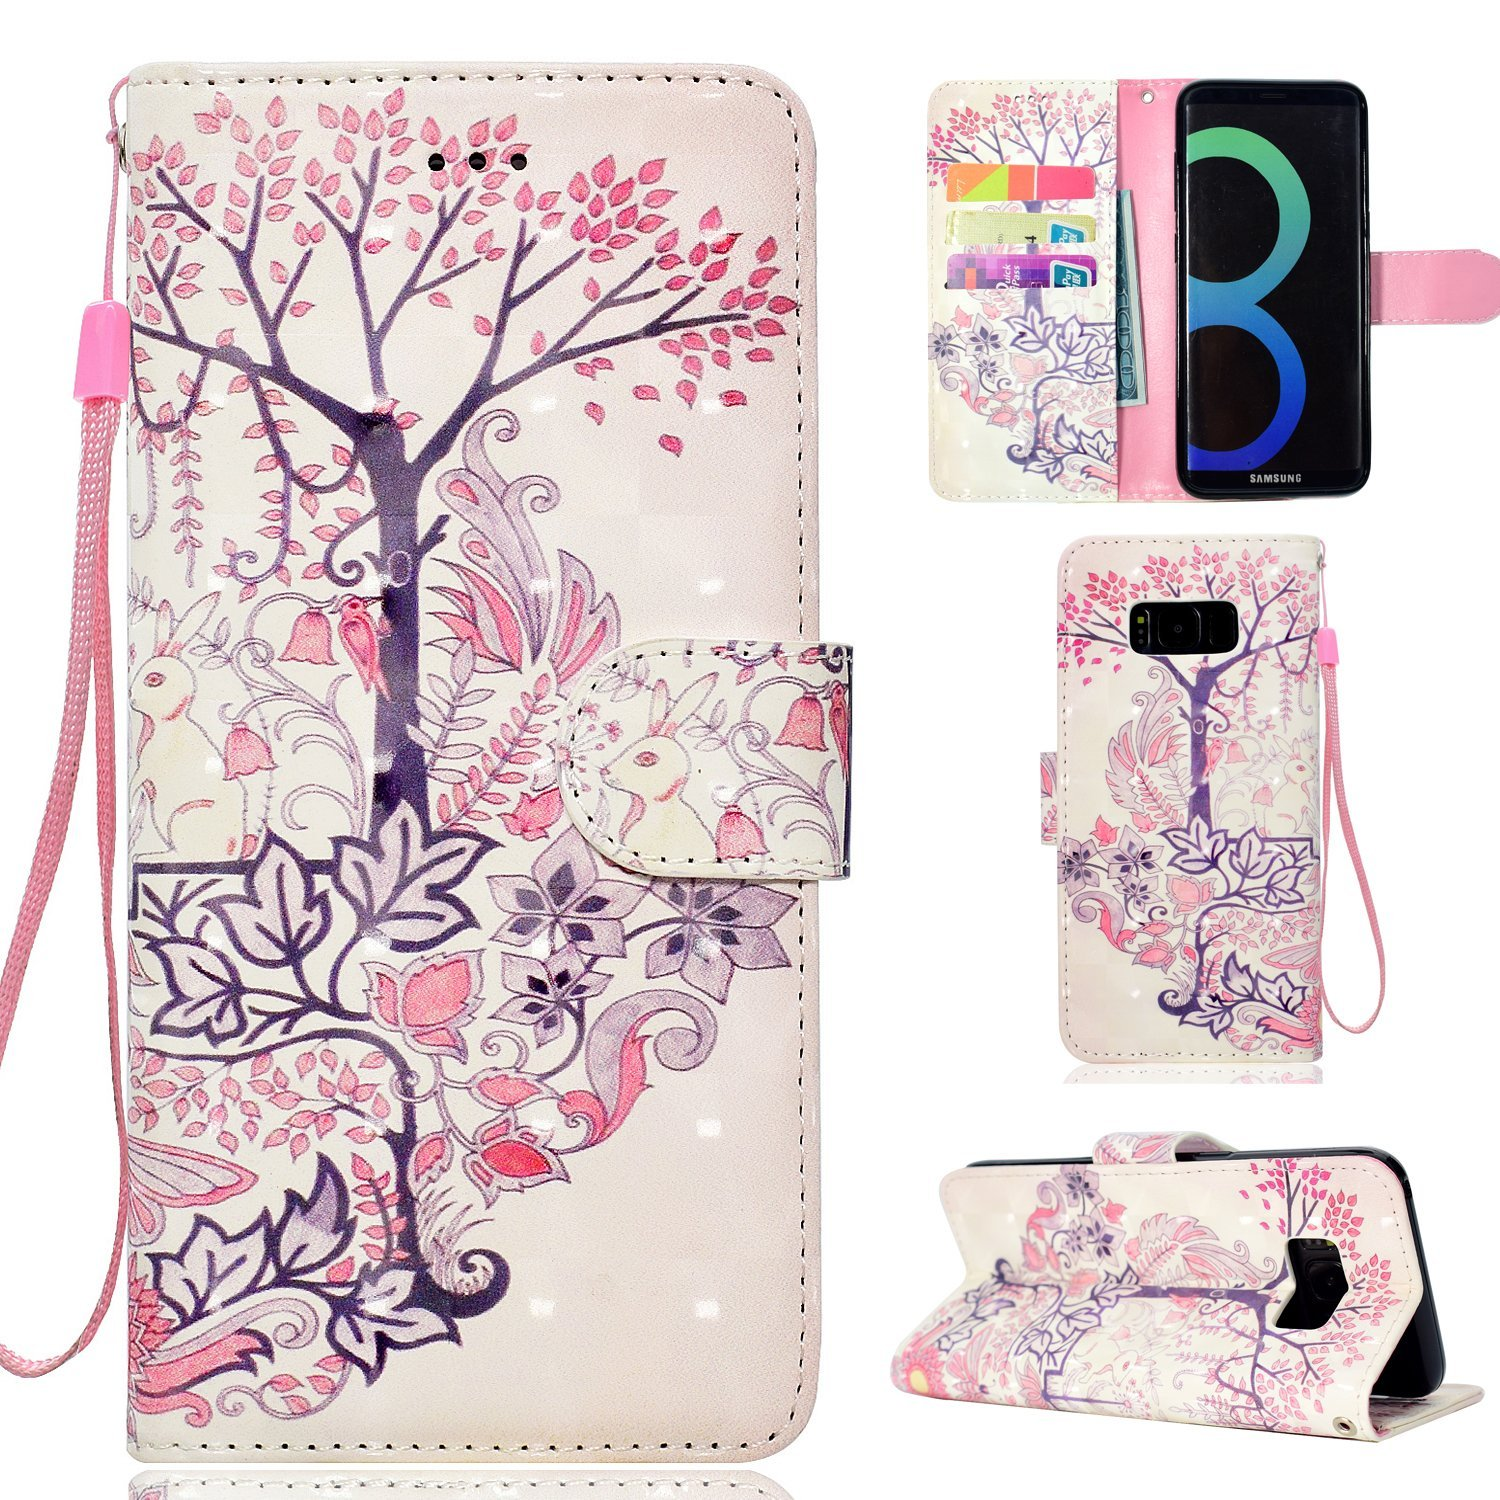 Galaxy S8 Plus Case, Ranyi [Full 3D Painting Print] [Flip Magnetic Wallet] [Glitter & Shiny] [ID&Card Holder] Cute Bling Leather Wallet Protective Case for Samsung Galaxy S8+ Plus (2017), rabbit